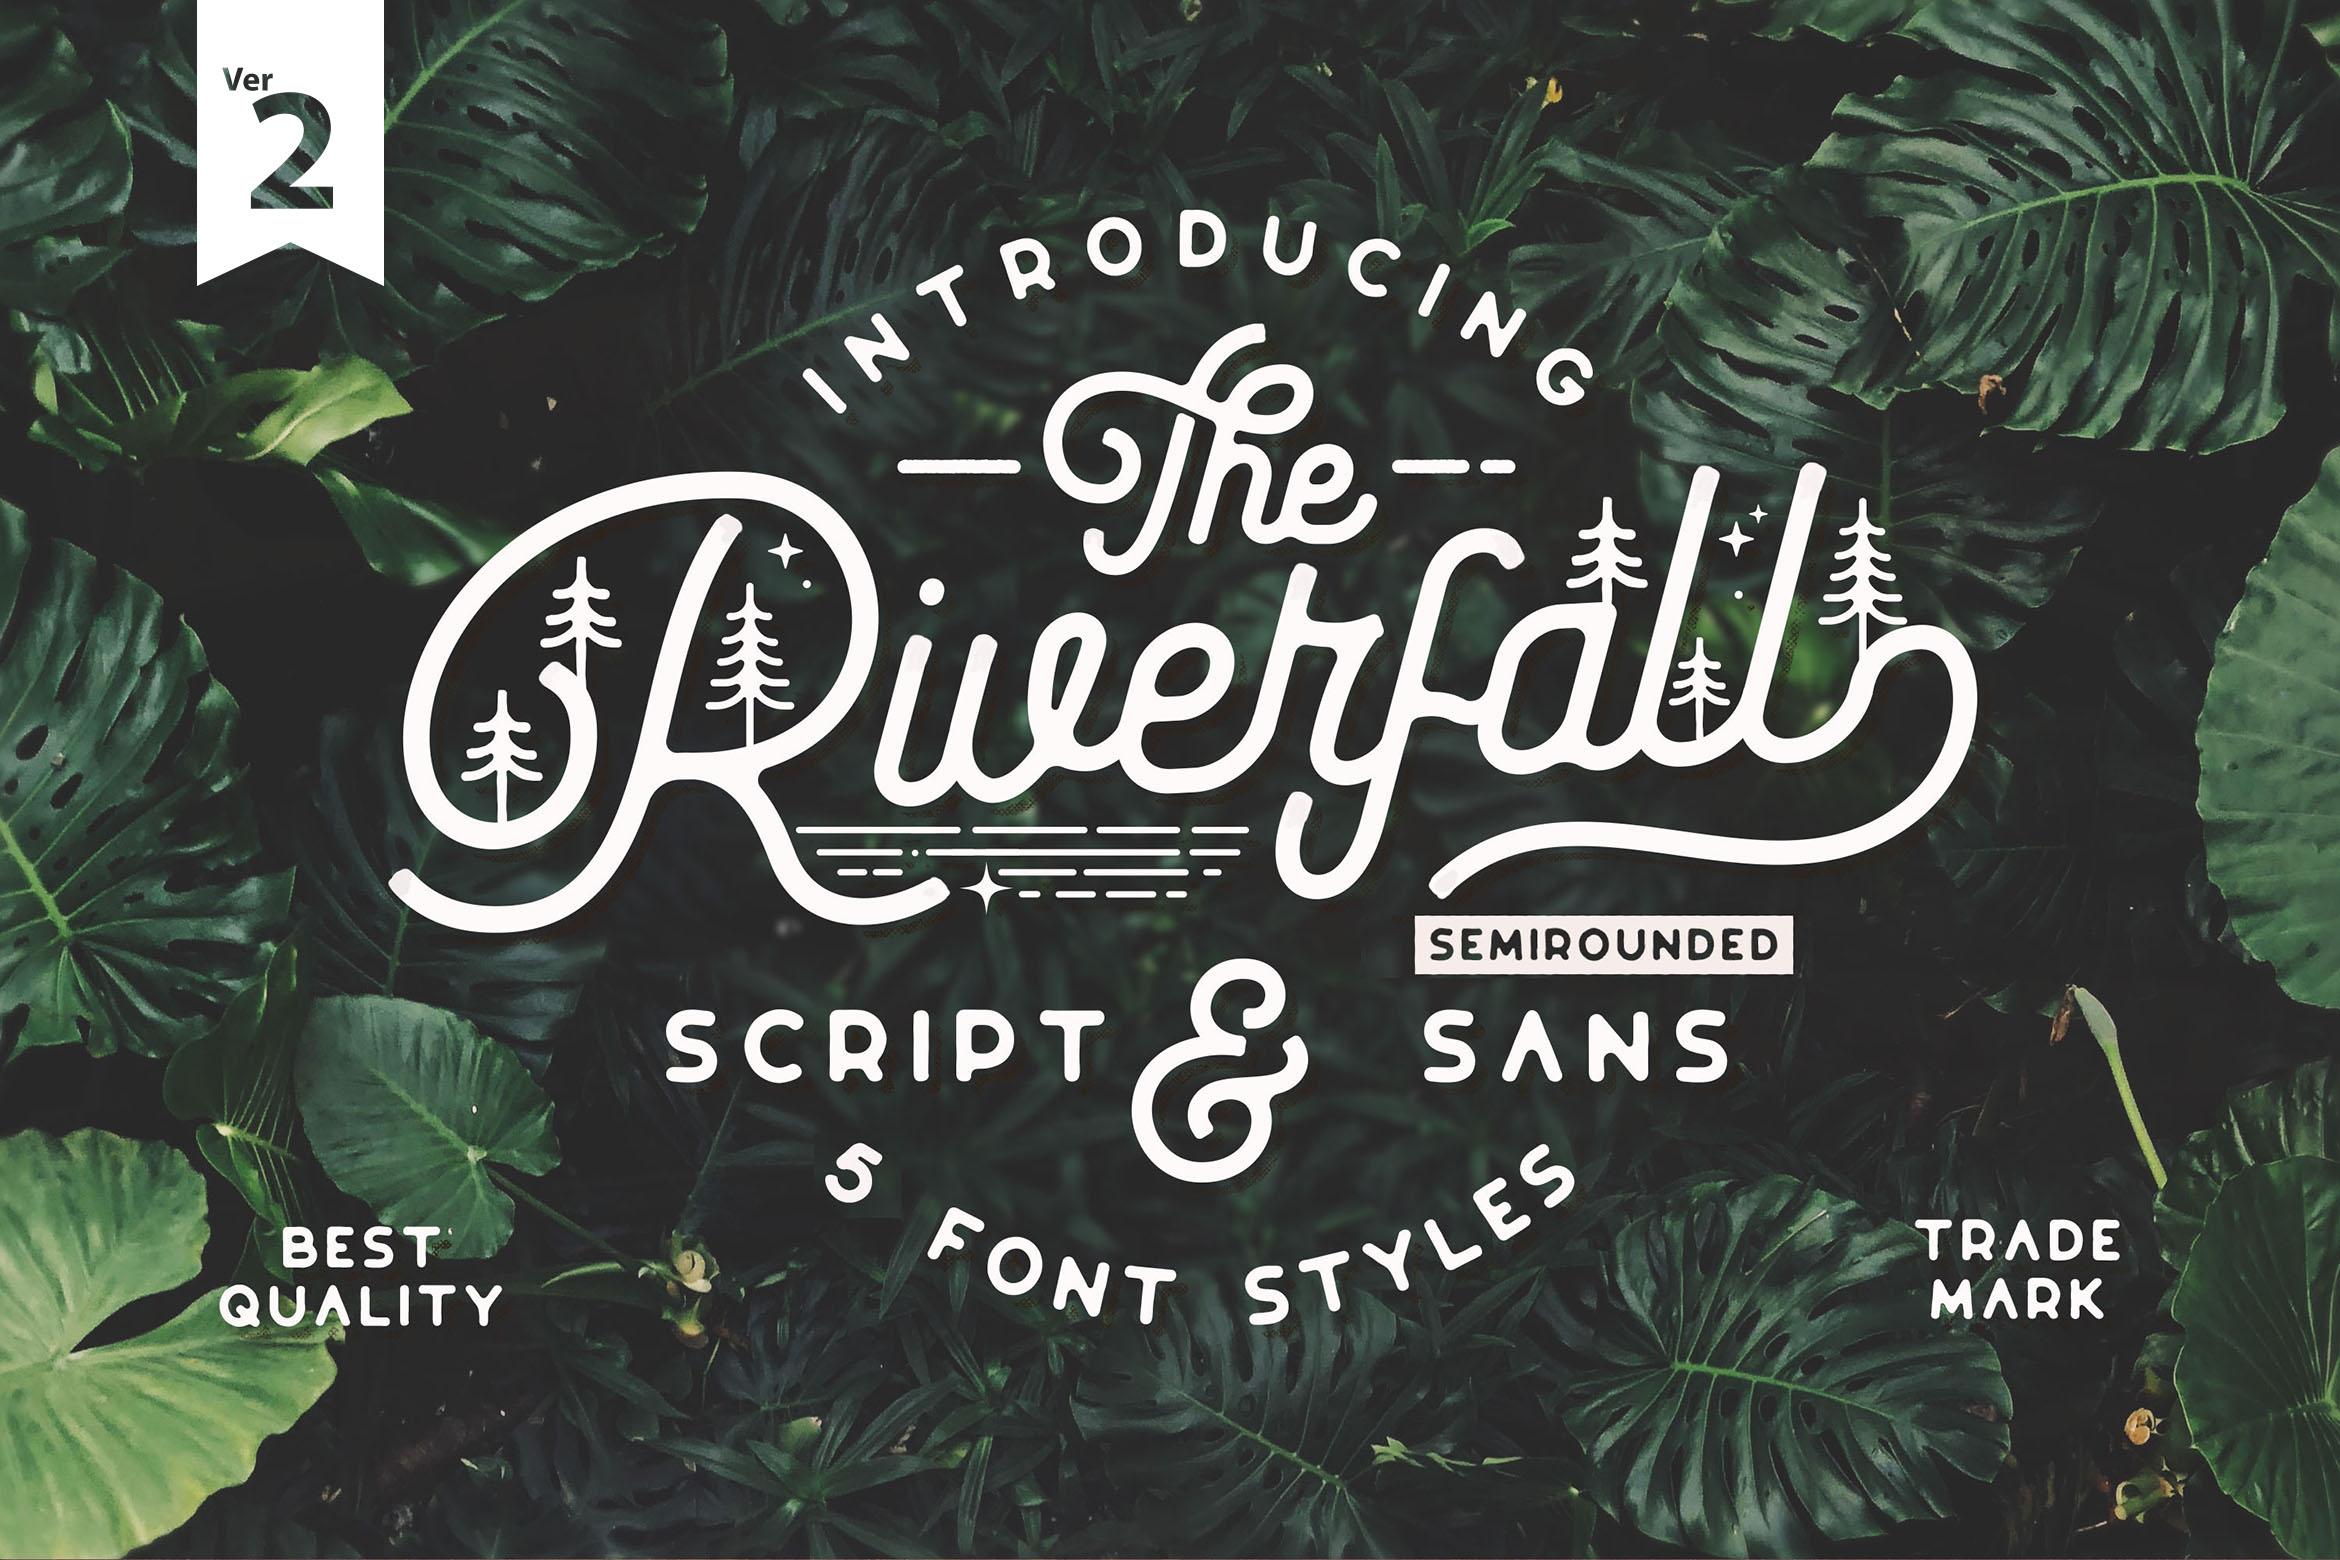 Riverfall Semi rounded Script and Sans Ver.2 example image 1